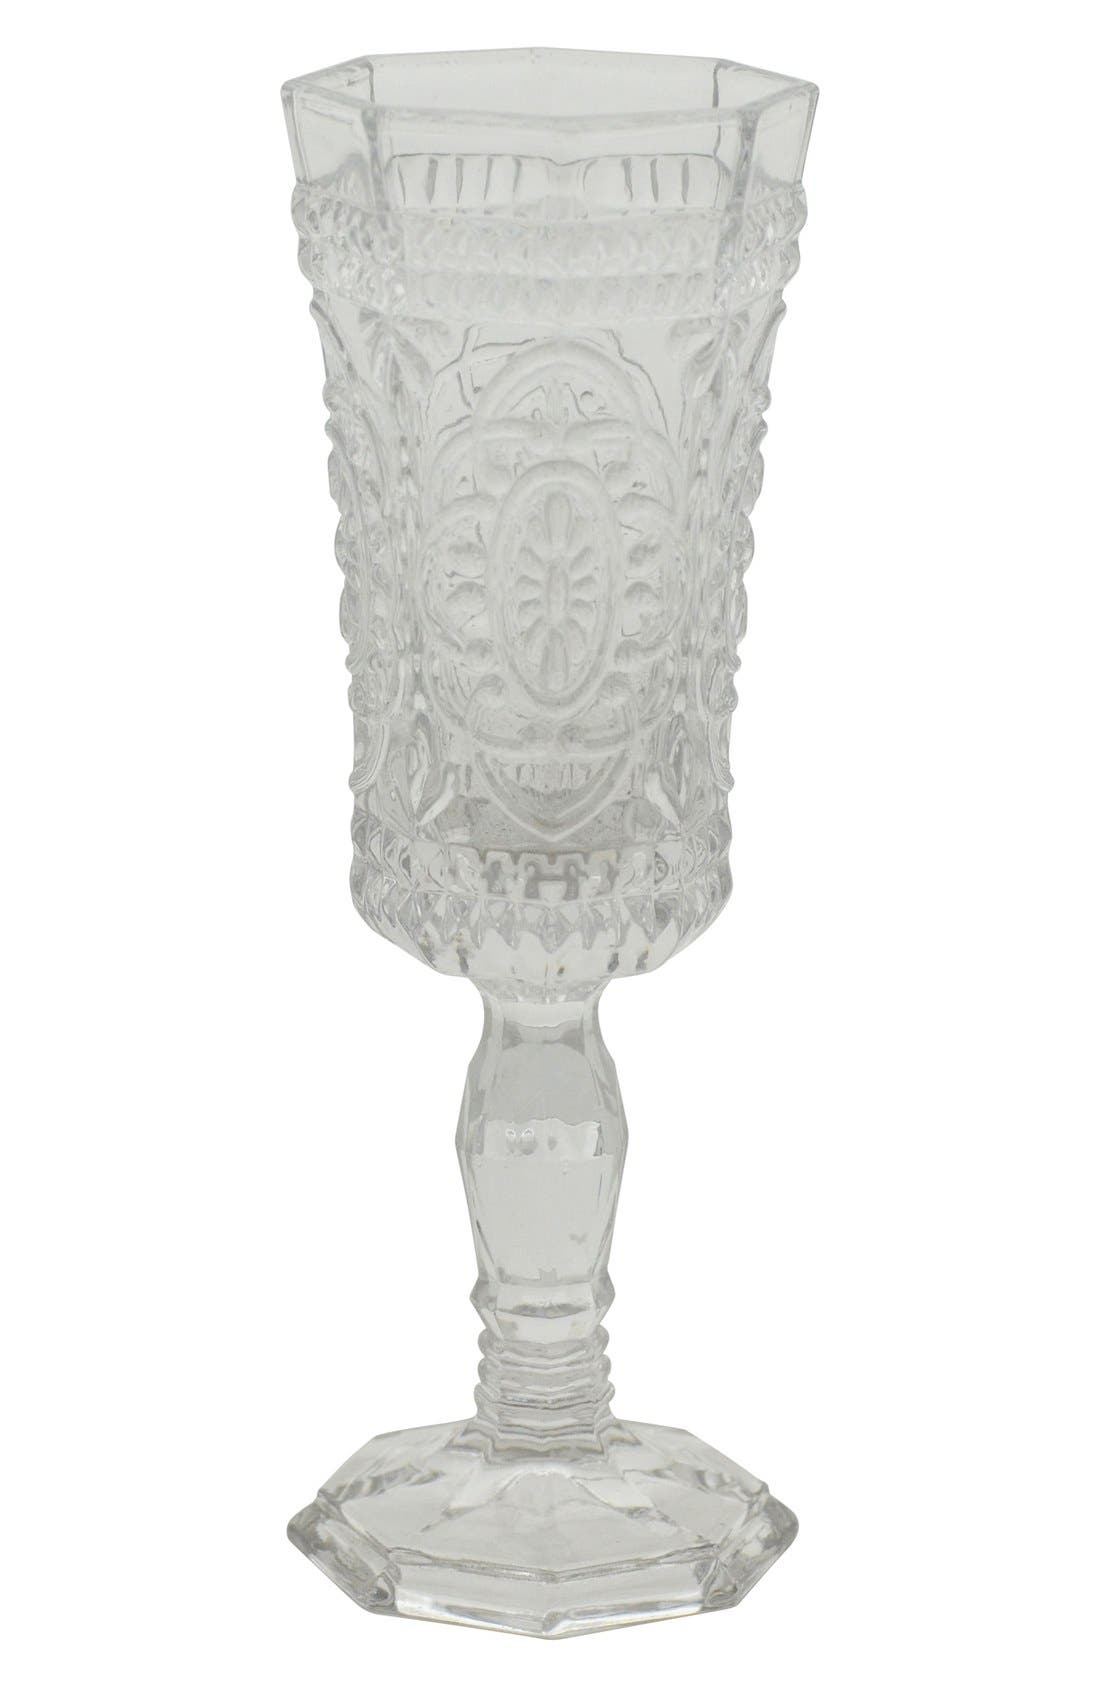 Main Image - 10 Strawberry Street 'Vatican' Glass Champagne Flutes (Set of 6)